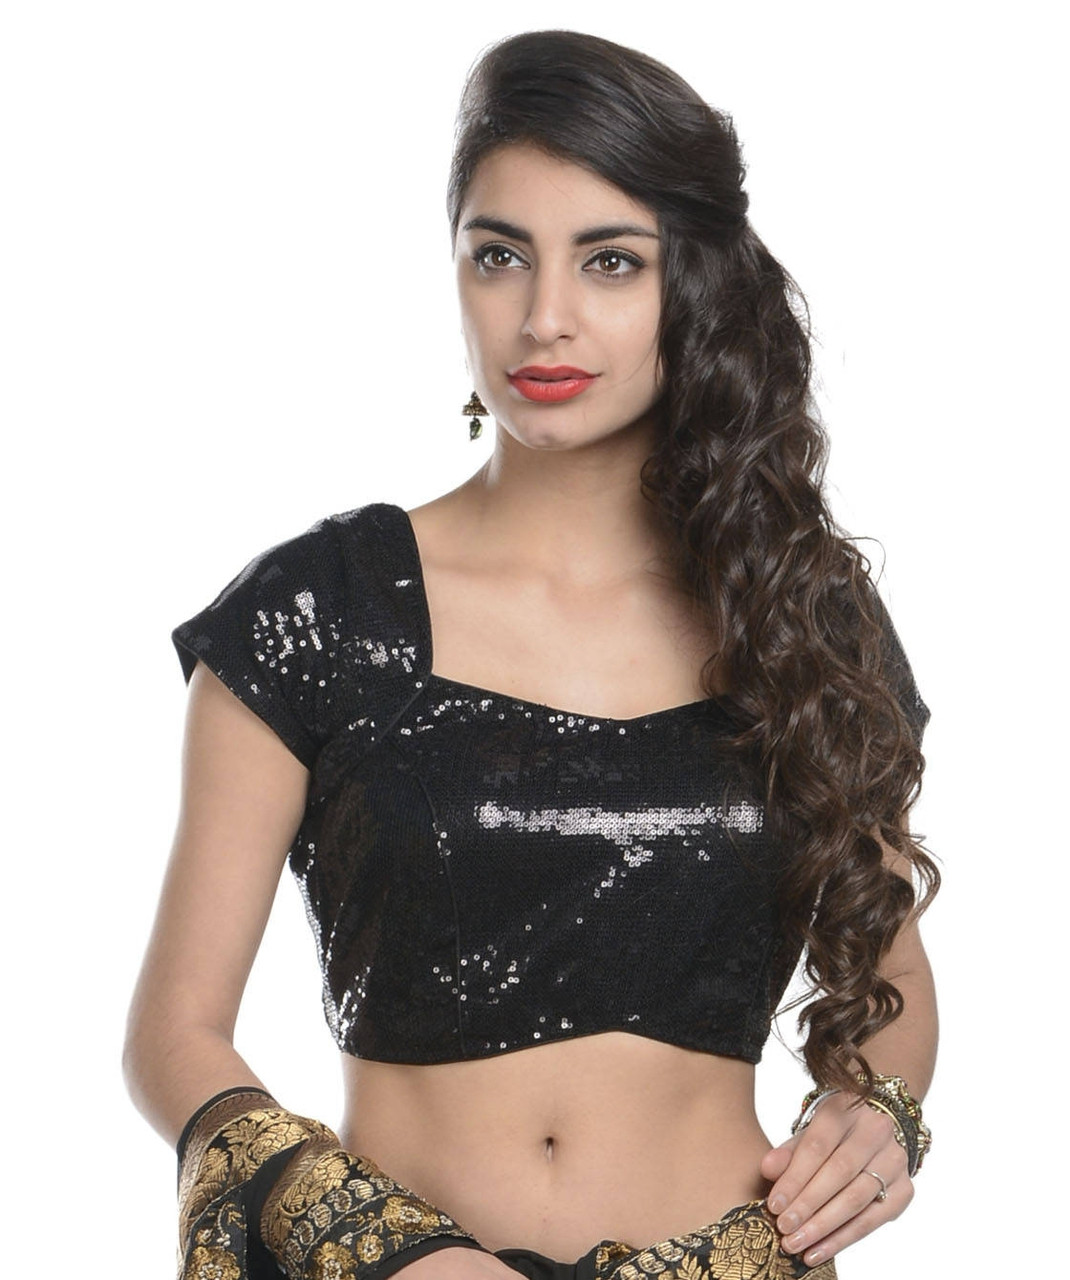 ba5484b807bd77 Ready to Wear Saree Blouse - Black Sequin Latest Designer Dress Top ...